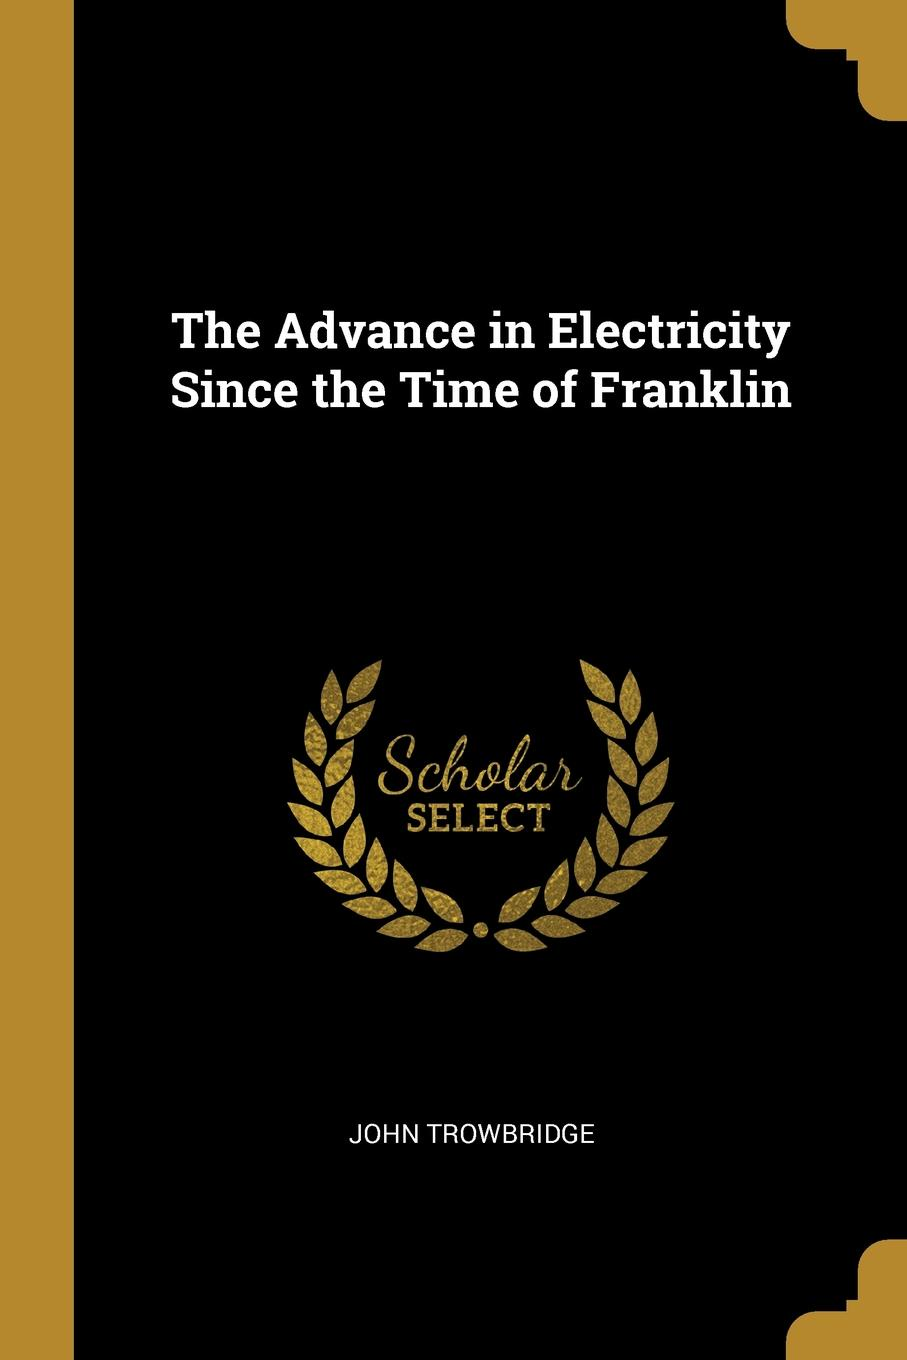 The Advance in Electricity Since the Time of Franklin